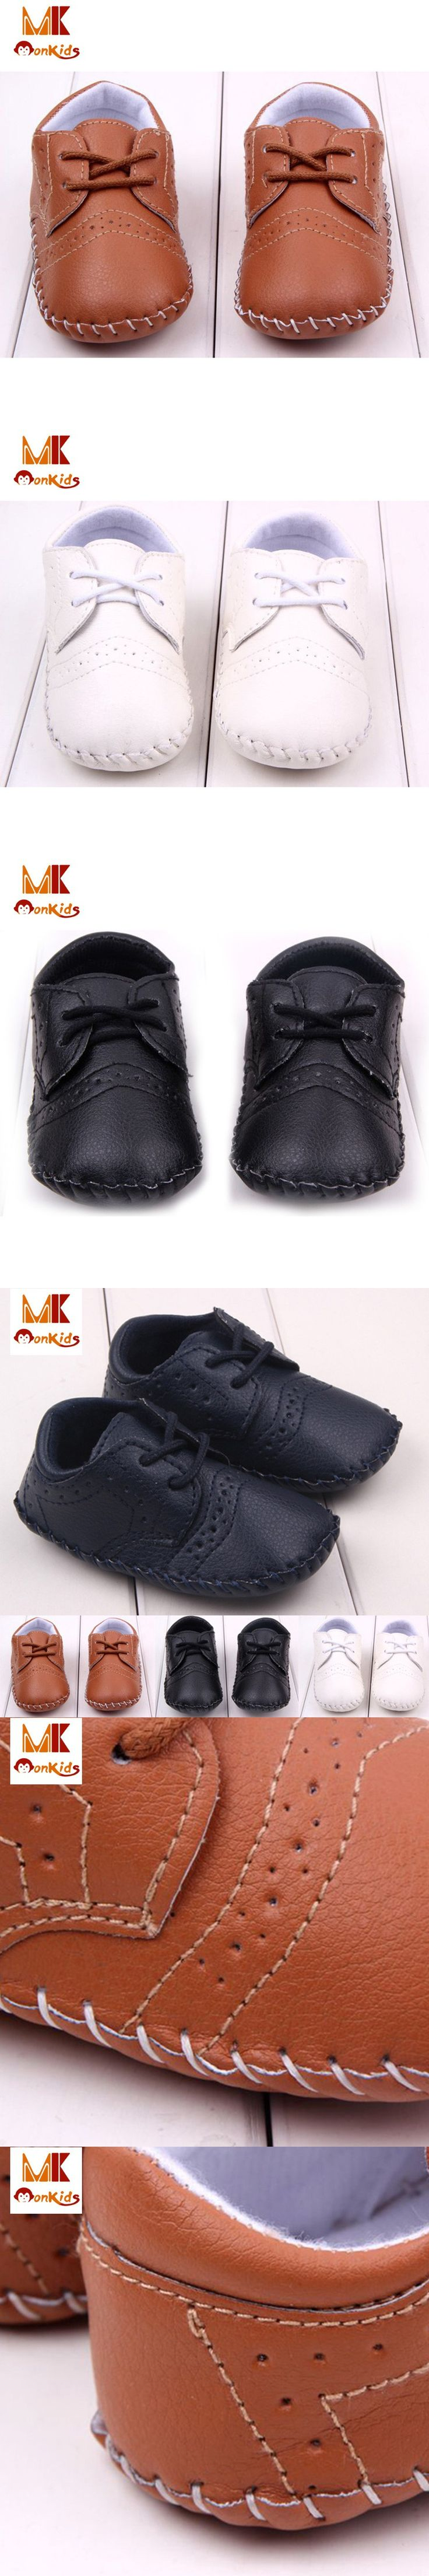 MK New Spring Fashion Baby Shoes England Solid Leather Toddler Moccasins Shallow Infant Boy PU Shoes for Newborns Free Shipping